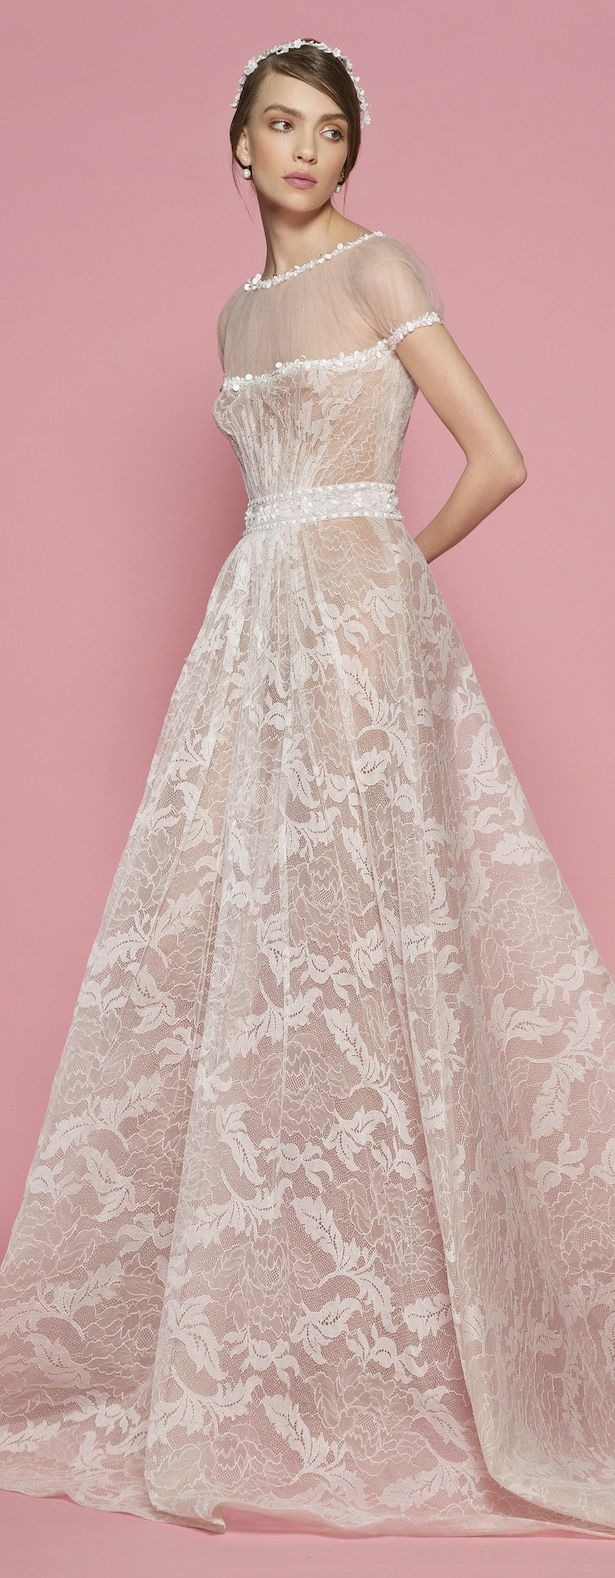 Georges Hobeika Bridal 2018 Wedding Dresses | Vestidos de novia ...